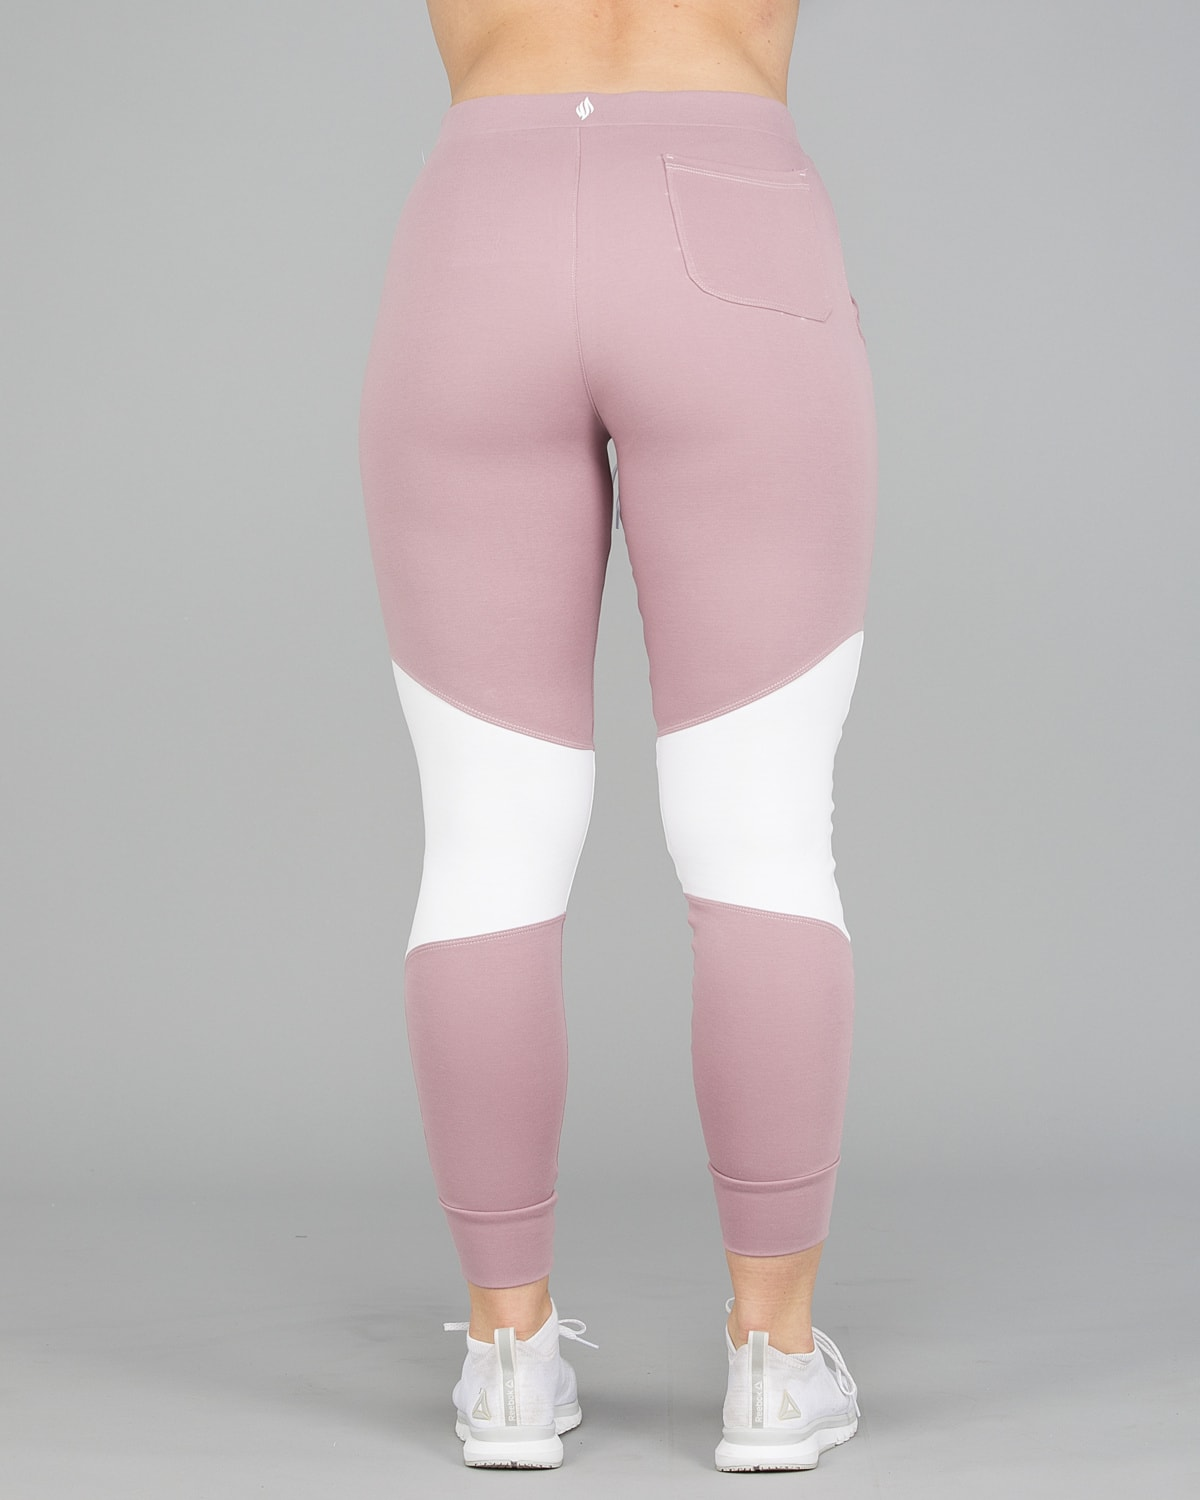 We Are Fit Melrose Pant4